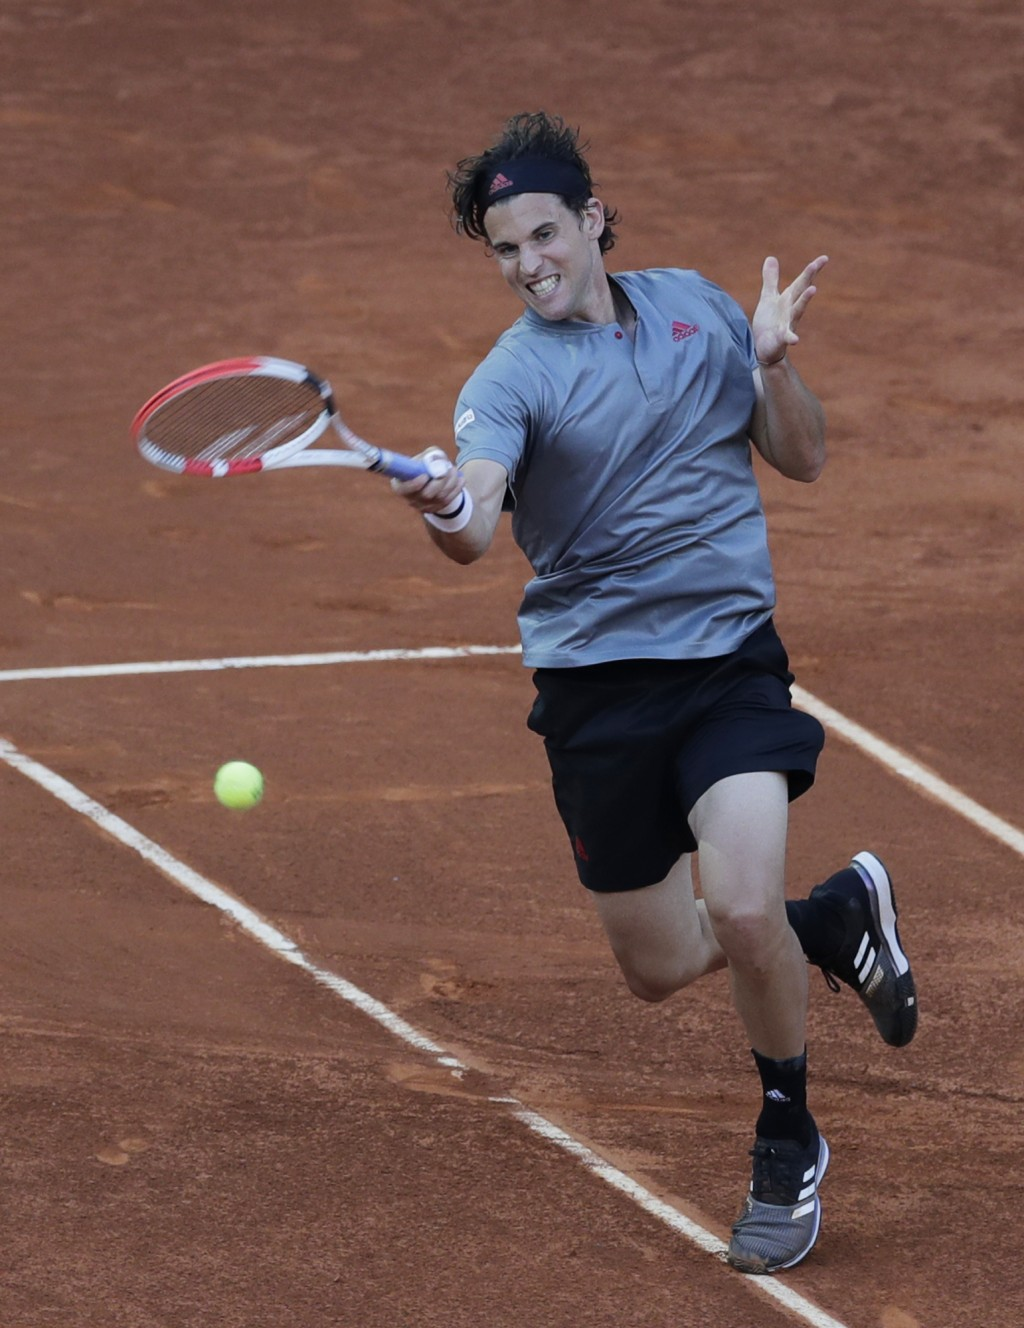 Dominic Thiem of Austria returns the ball to Marcos Giron of the U.S. during their match at the Madrid Open tennis tournament in Madrid, Spain, Tuesda...